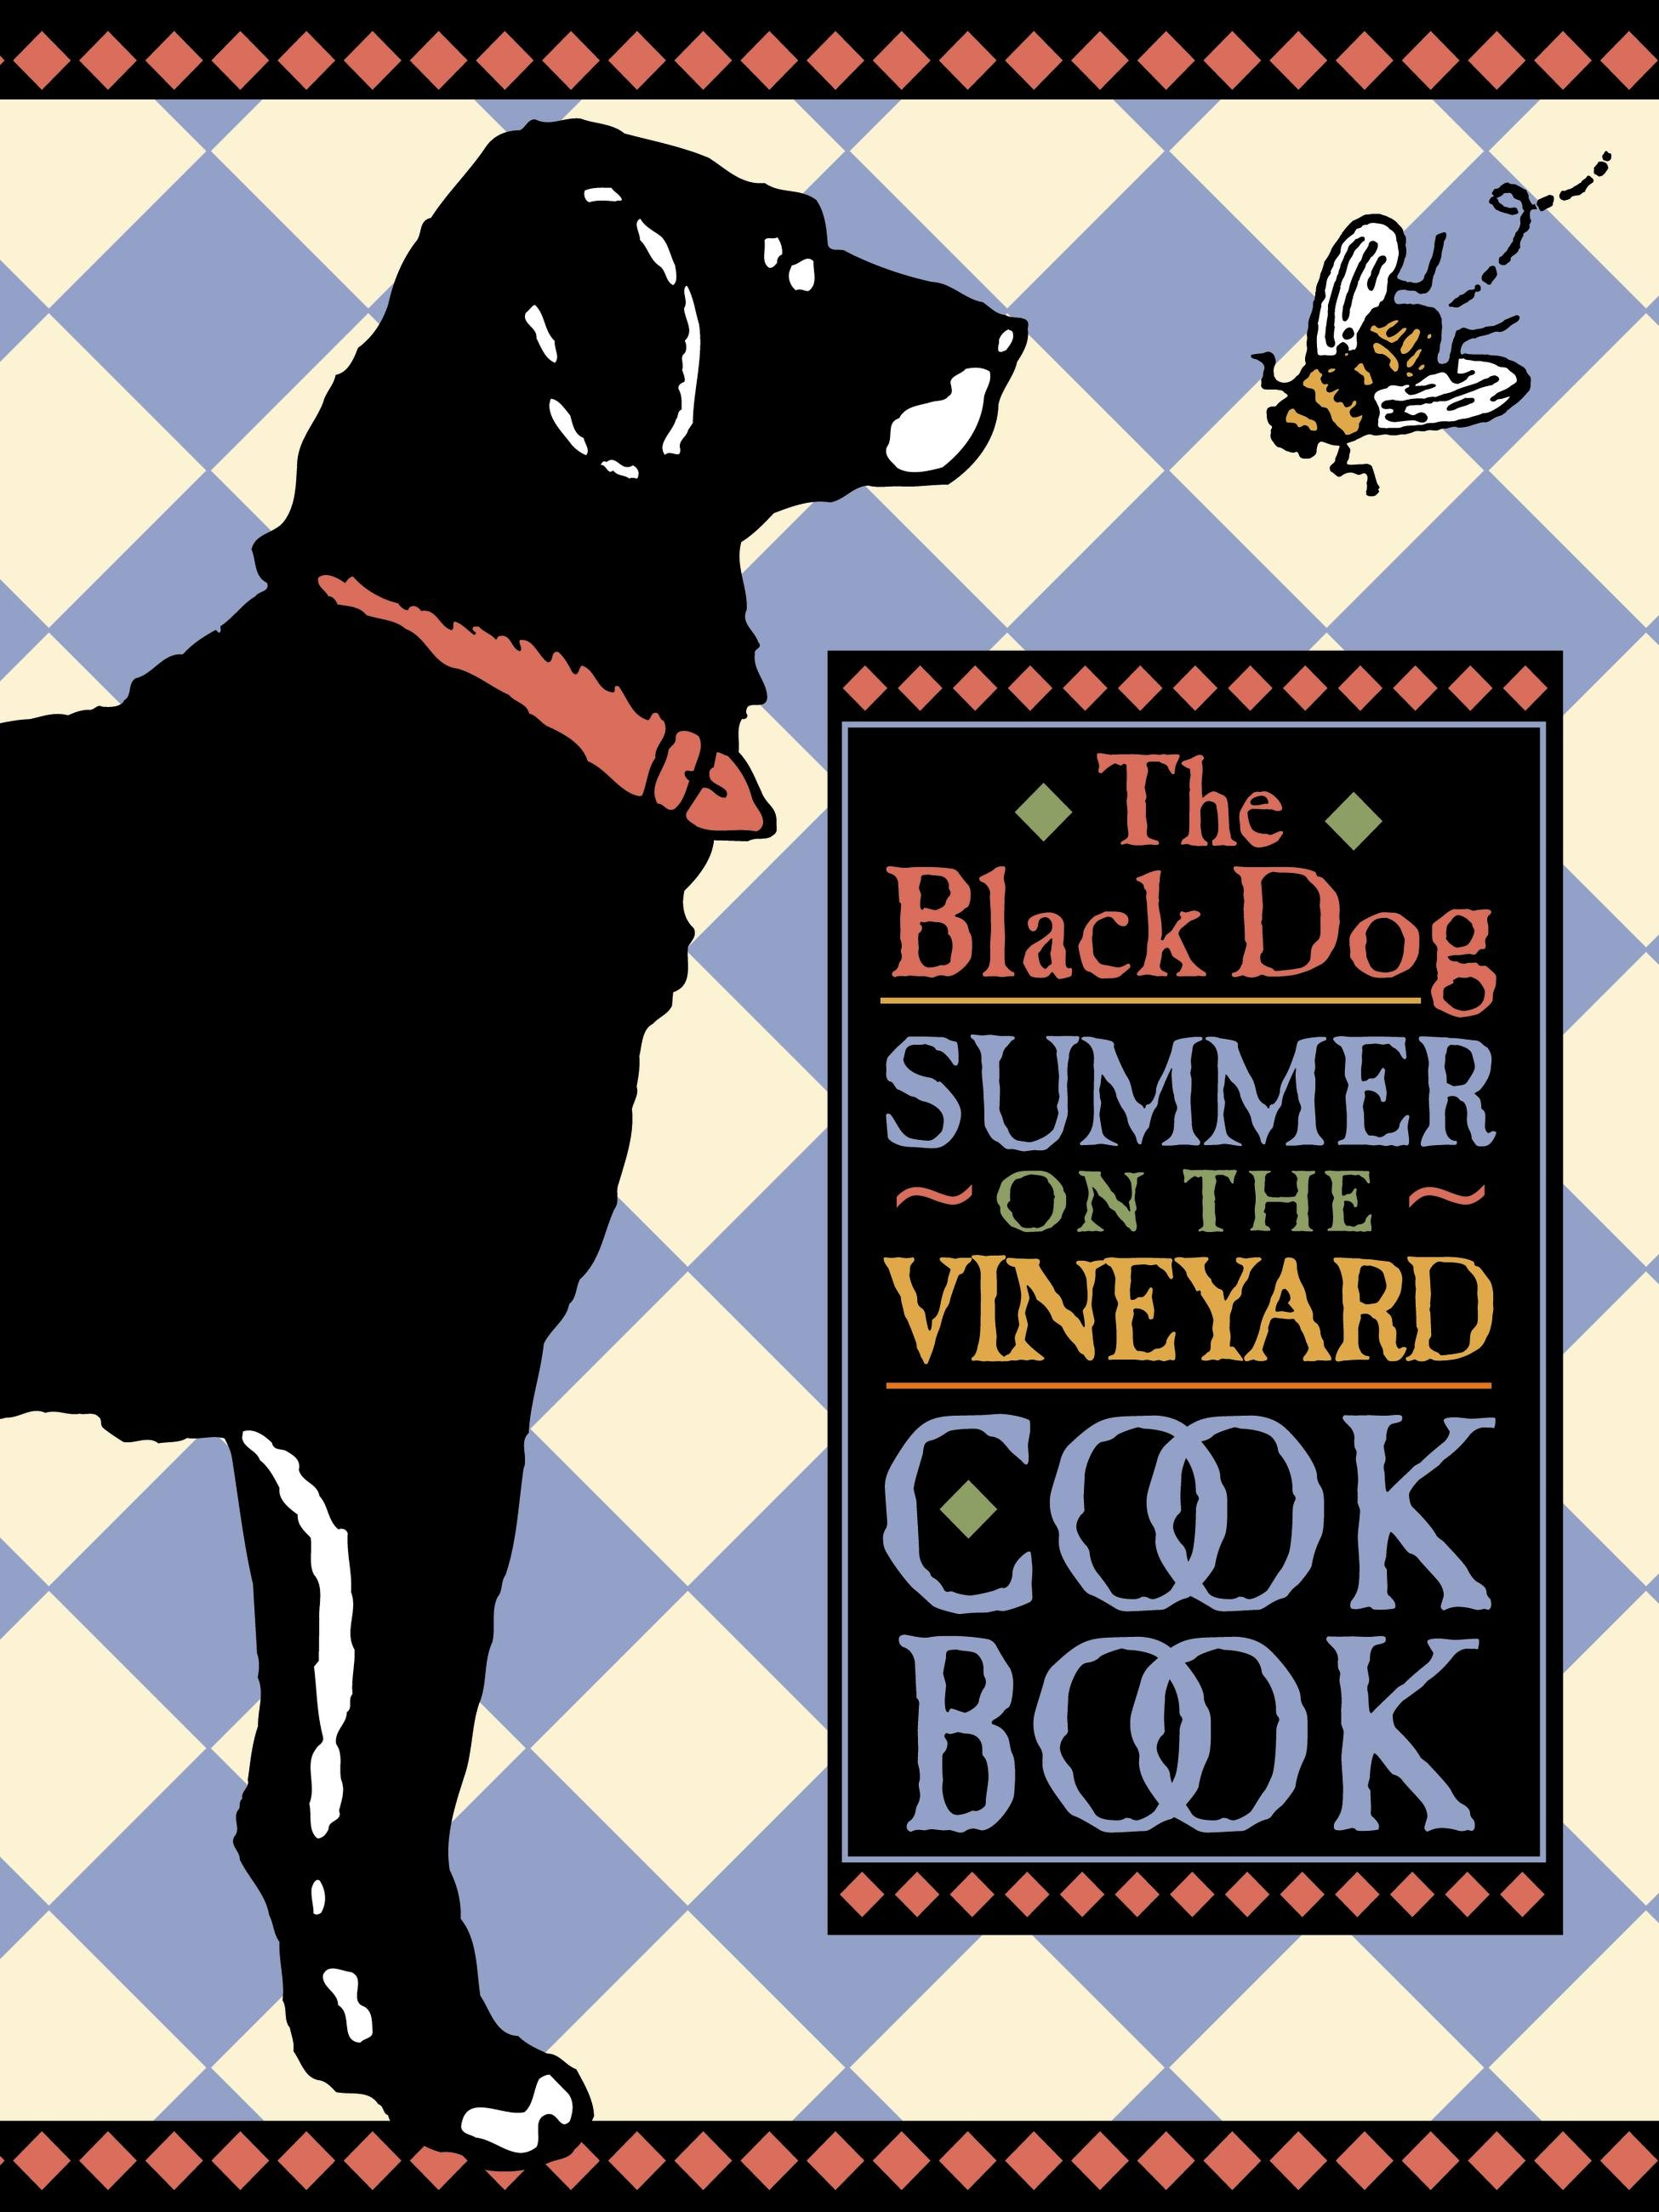 Black Dog Summer on the Vineyard Cookbook, The